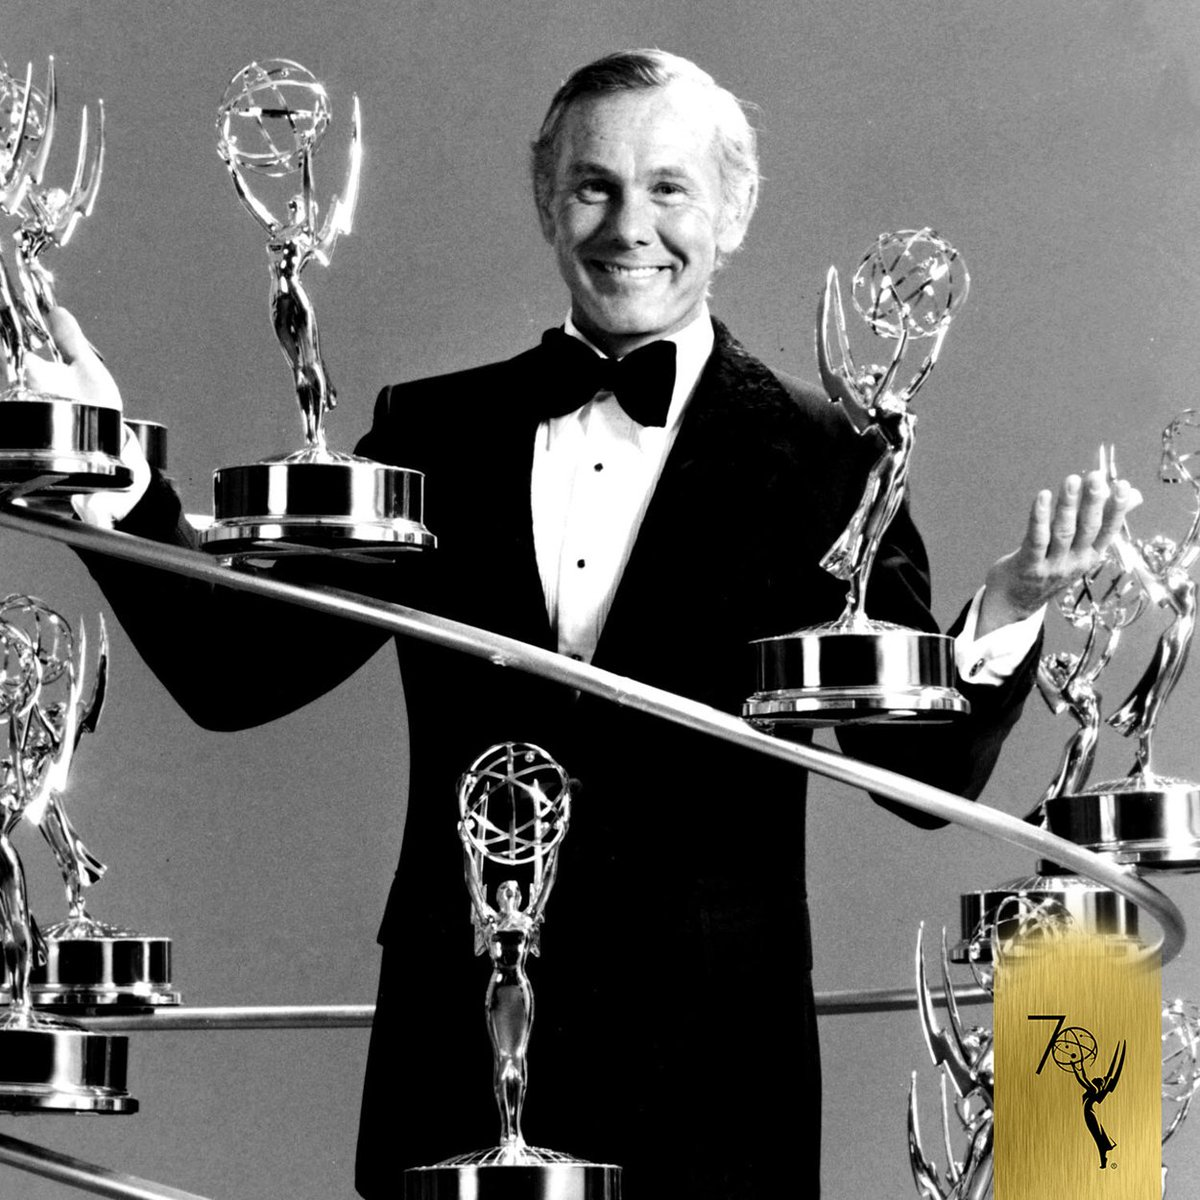 Today is the anniversary of #Emmys winner and five-time host Johnny Carson's birthday!  Johnny won Emmys in 1977, 1978, 1979, & 1992 for THE TONIGHT SHOW STARRING JOHNNY CARSON. He also received the Governors Award in 1980 and was inducted into the Hall of Fame in 1987. 70#Emmys70